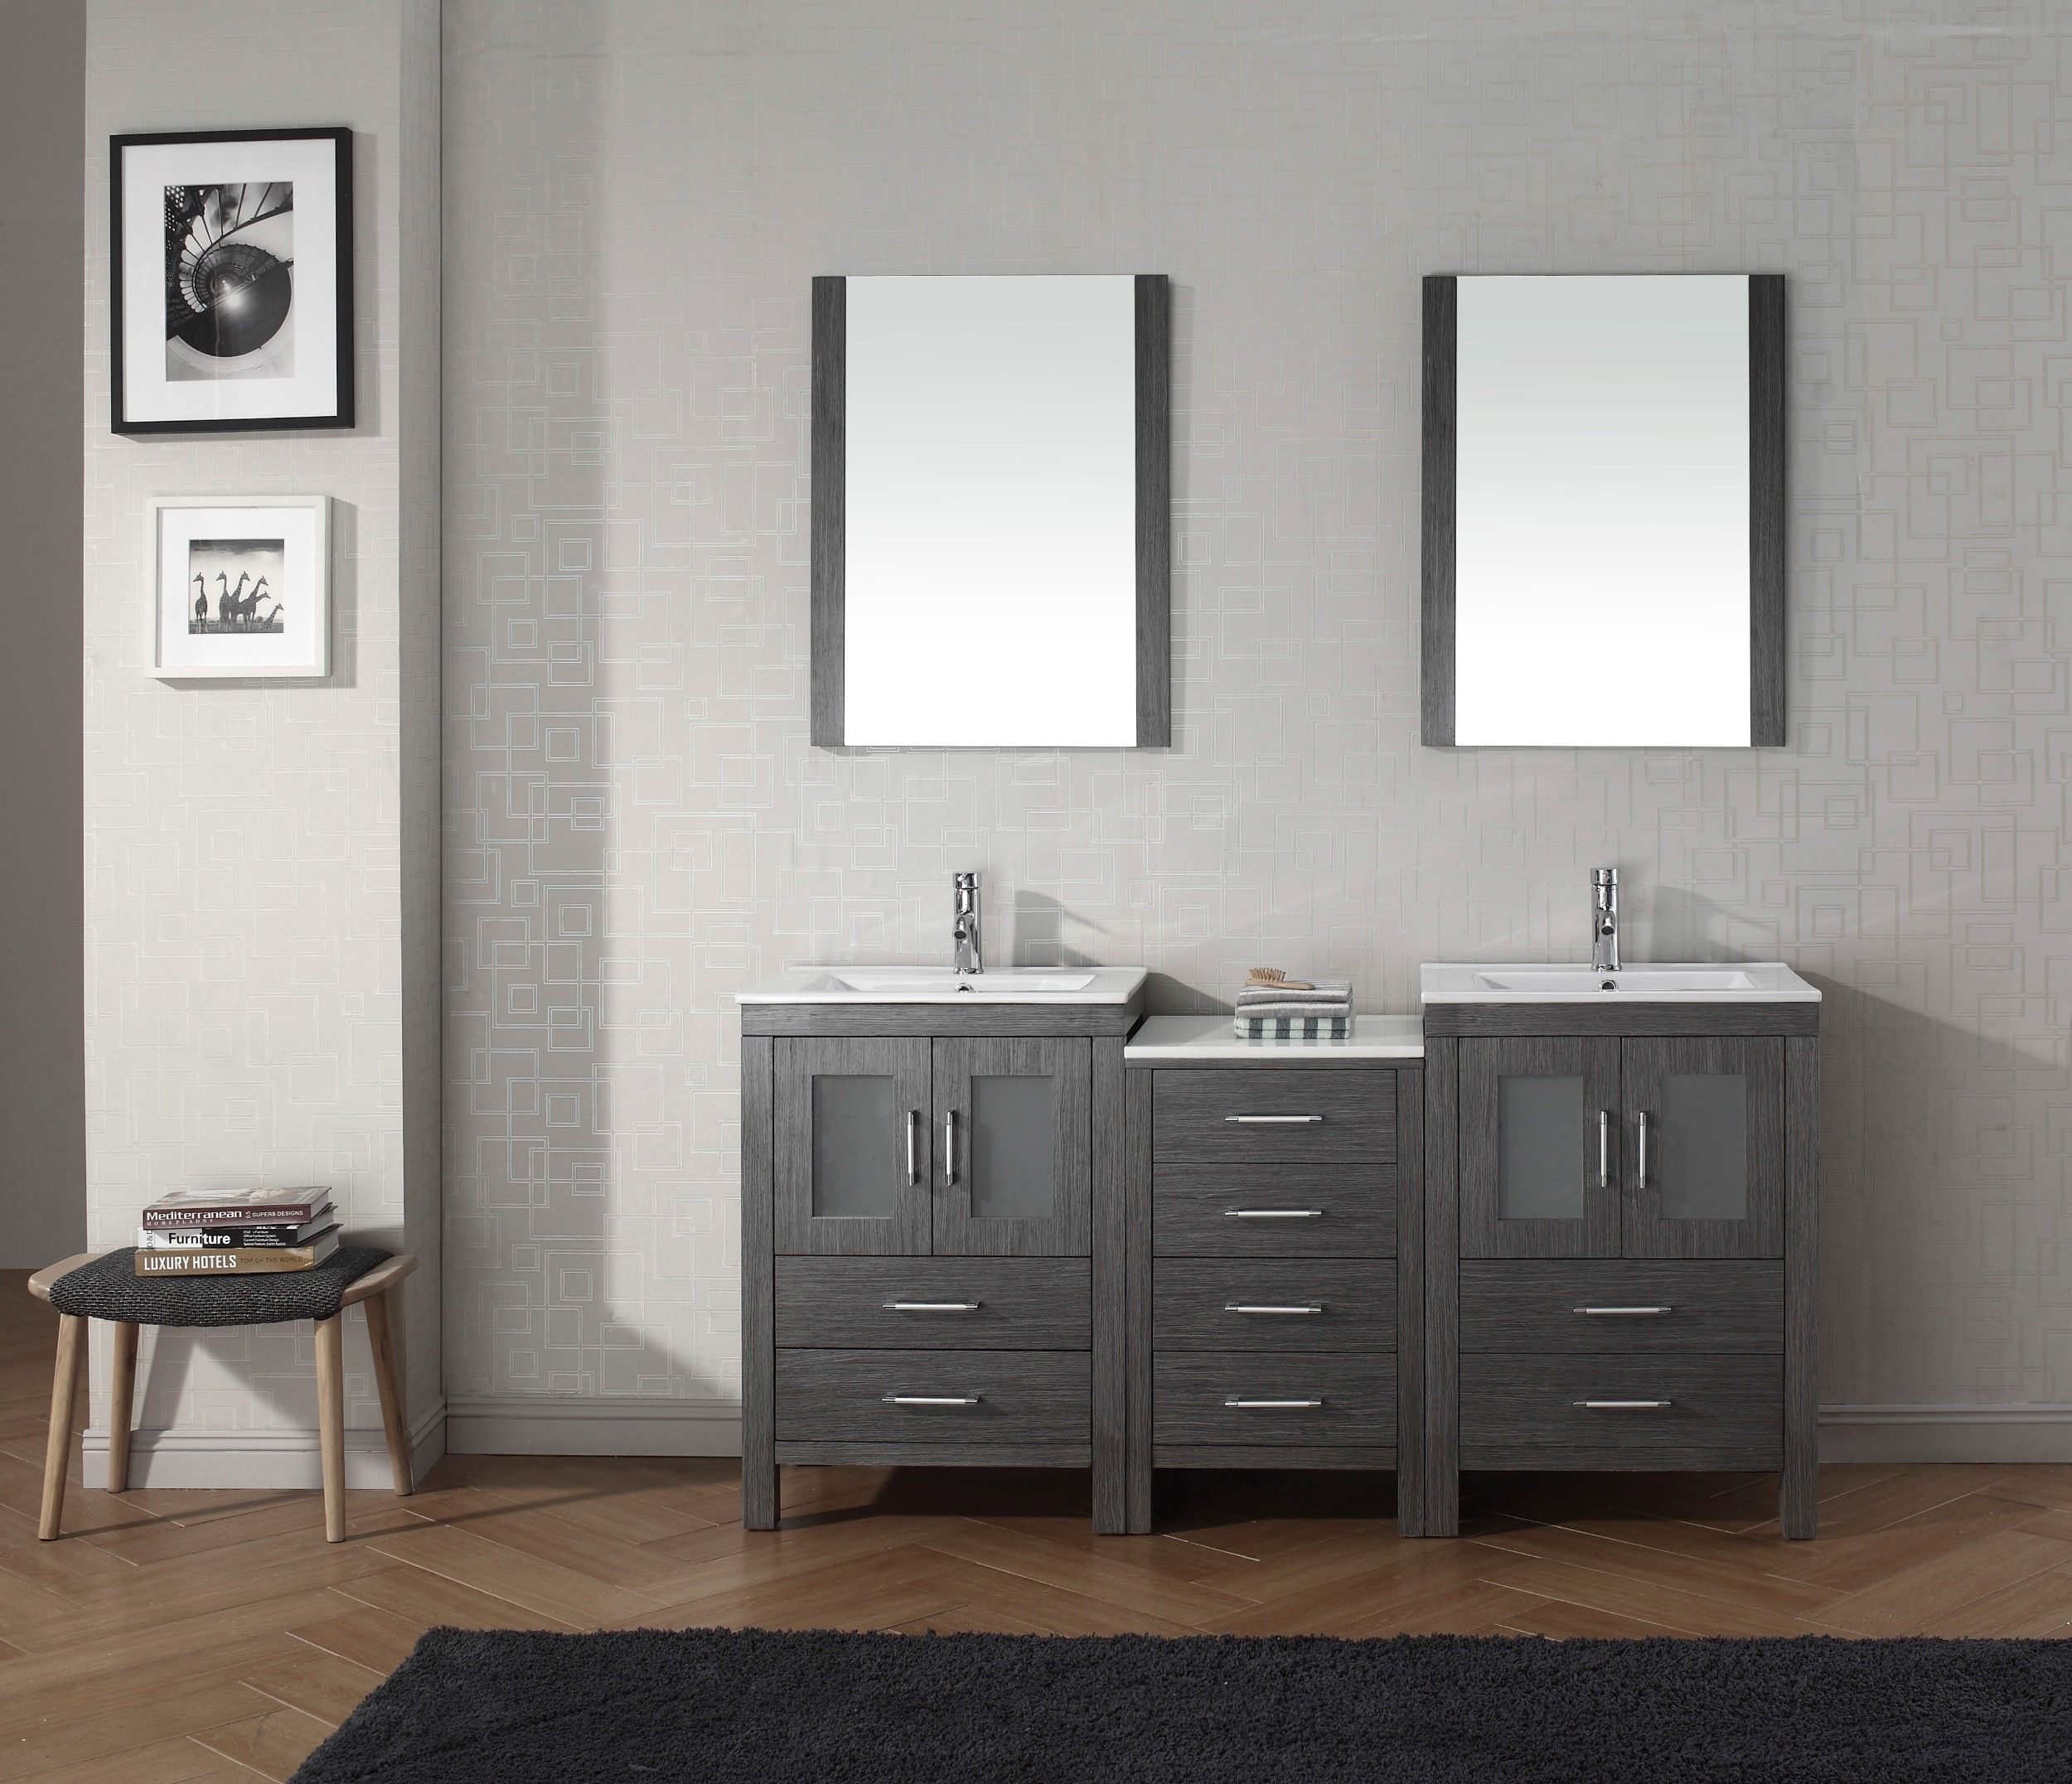 Dior 66  Double Bathroom Vanity Set in Zebra GreyDior 66  Double Bathroom Vanity Set in Zebra Grey   bathroom reno  . 66 Double Sink Vanity. Home Design Ideas